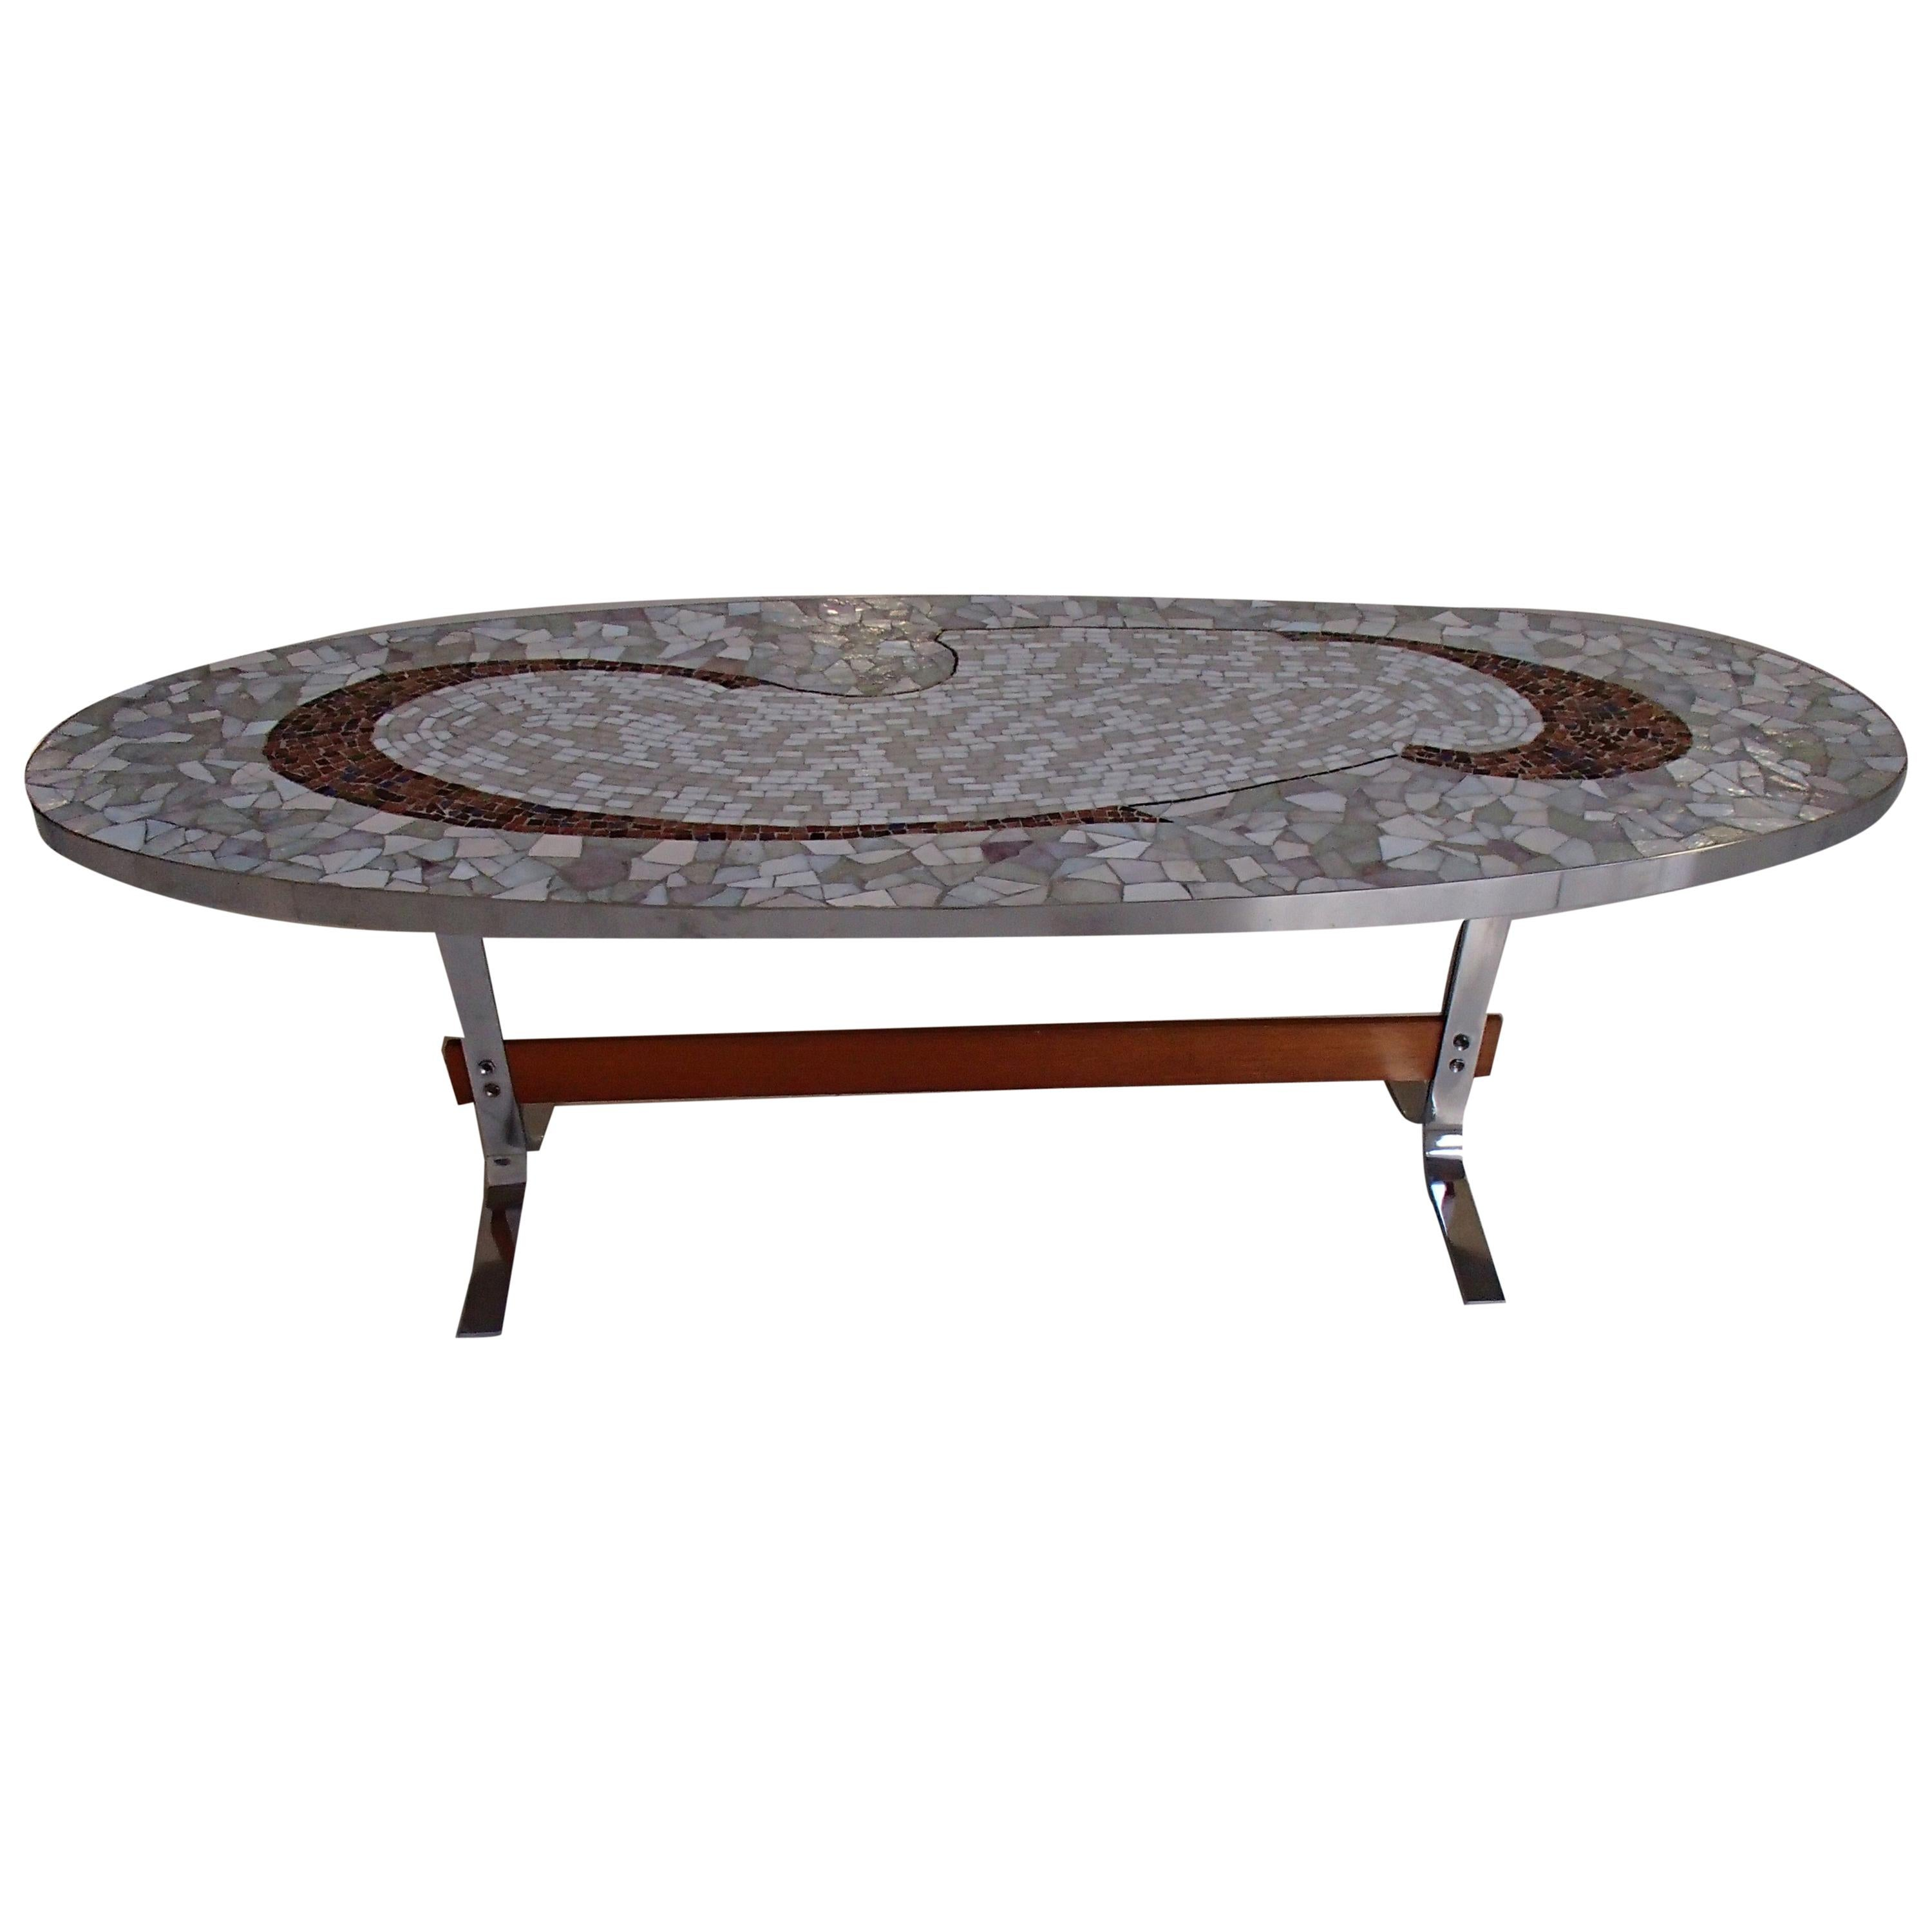 Mid-Century Modern Oval Chrome and Mosaic Low Table